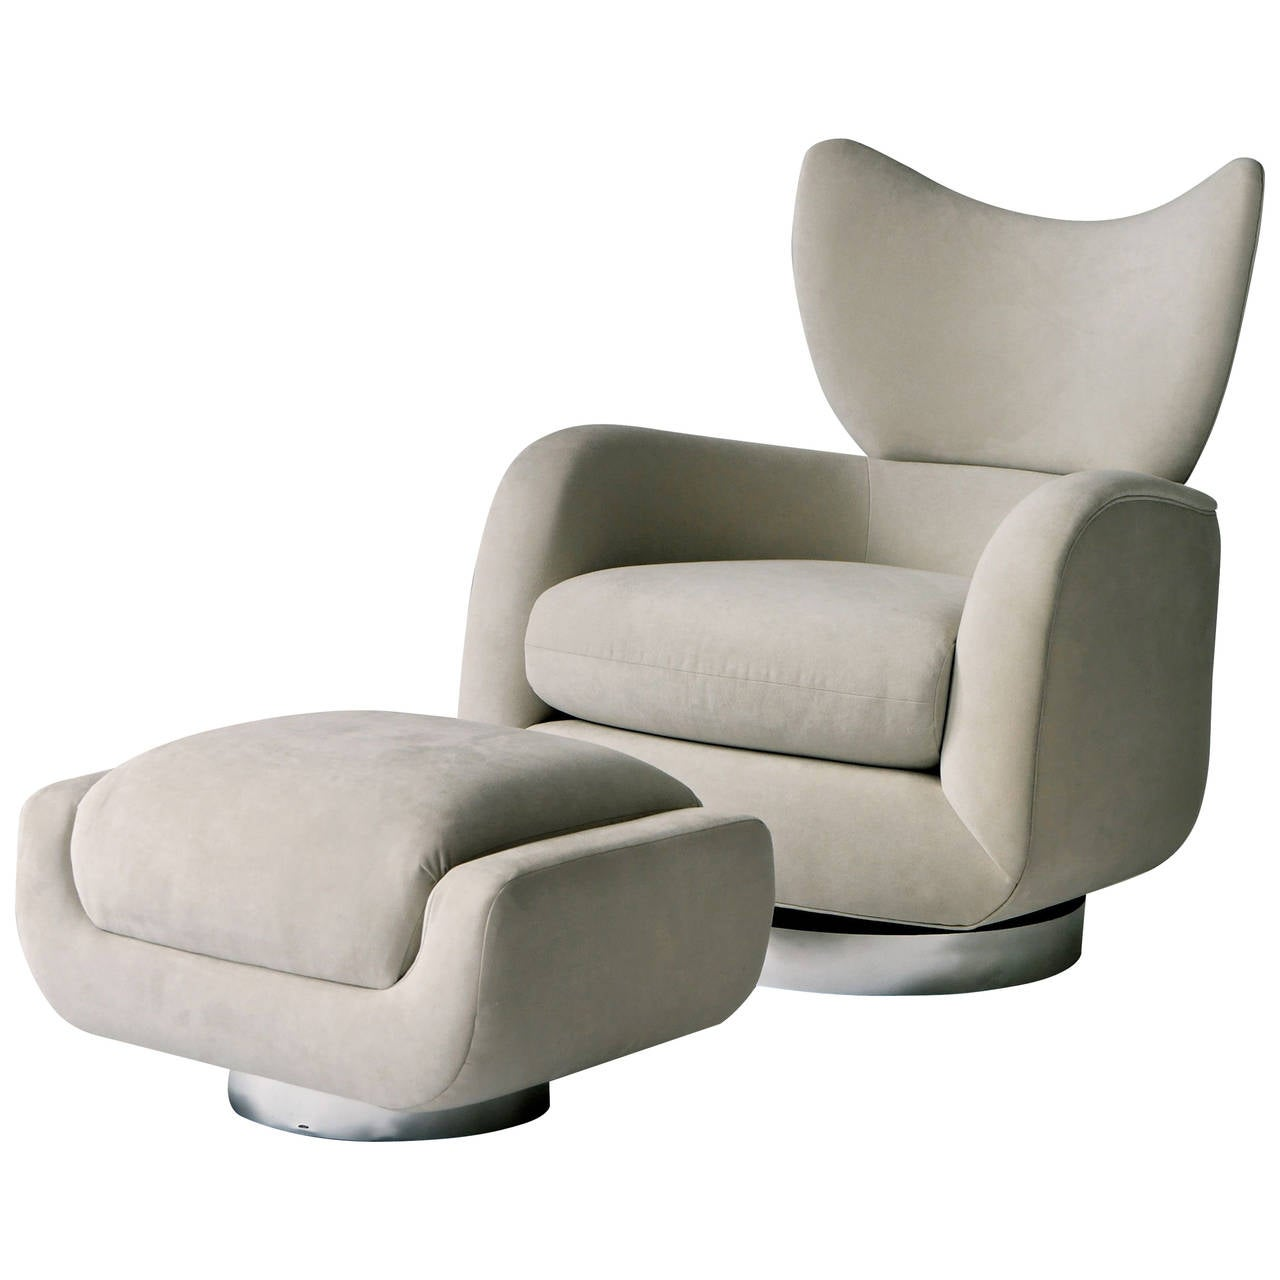 Vladimir Kagan Swivel Lounge Chair and Ottoman For Sale at